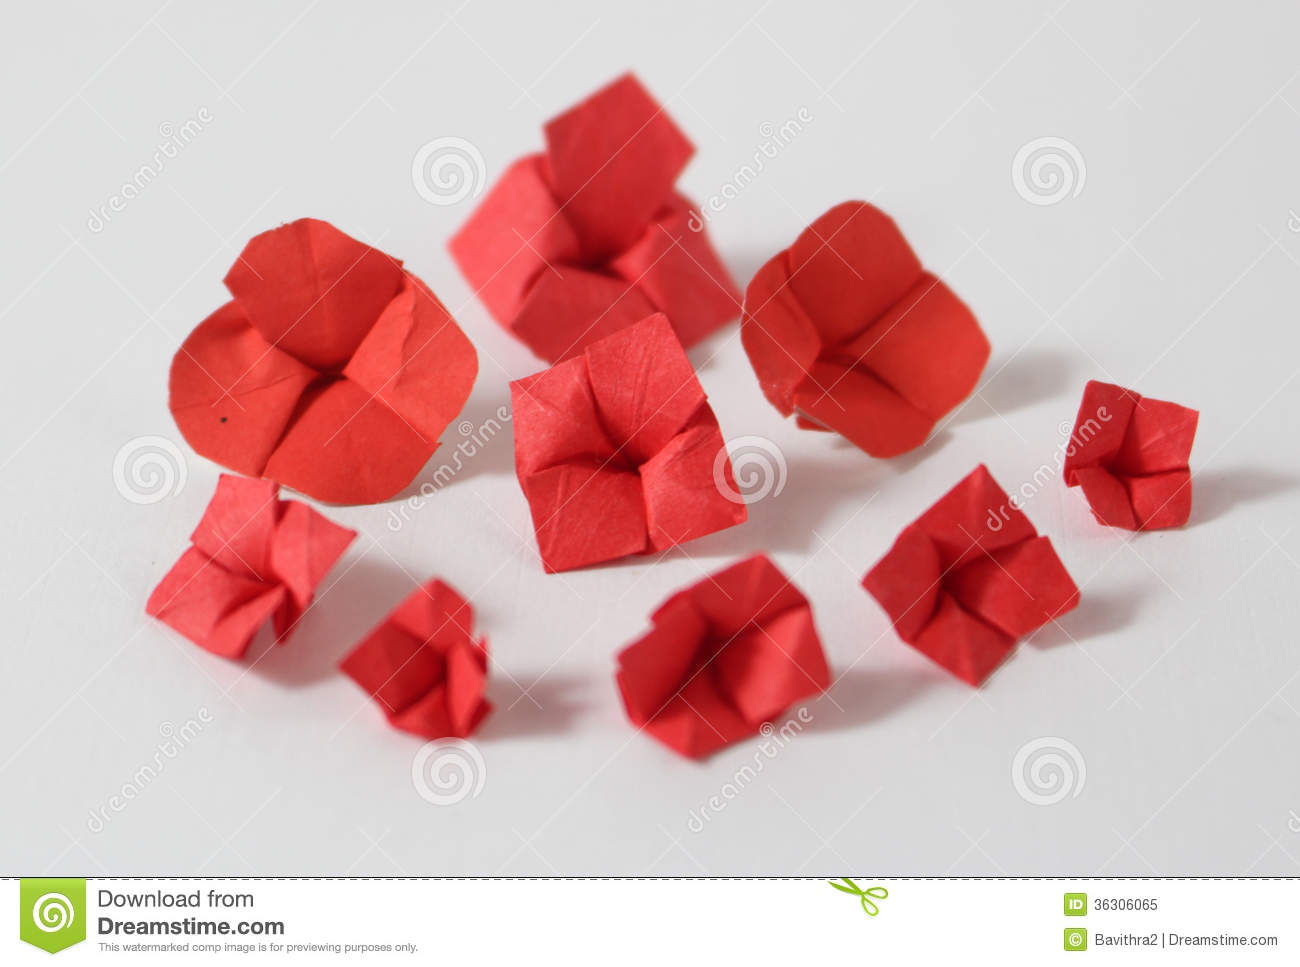 Origami Flowers Royalty Free Stock Photo Image 36306065